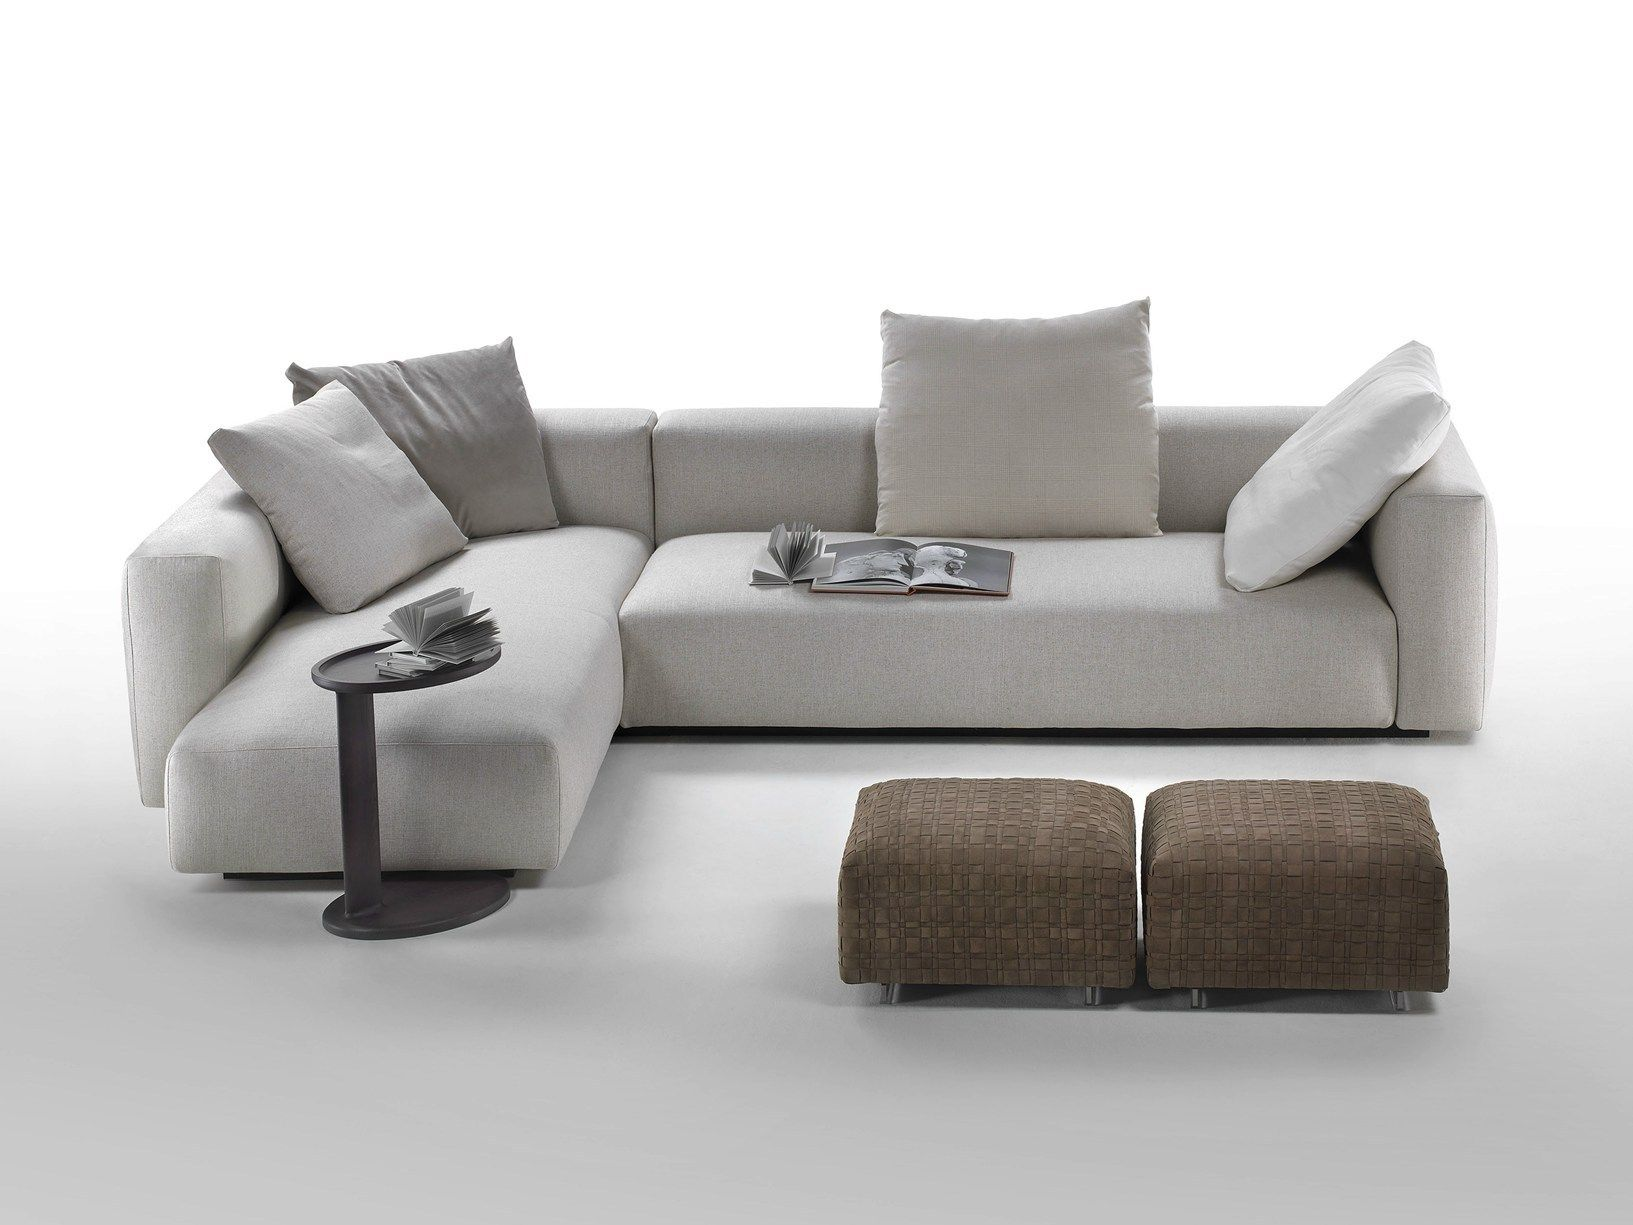 Lario Modular Sofa by Antonio Citterio for Flexform